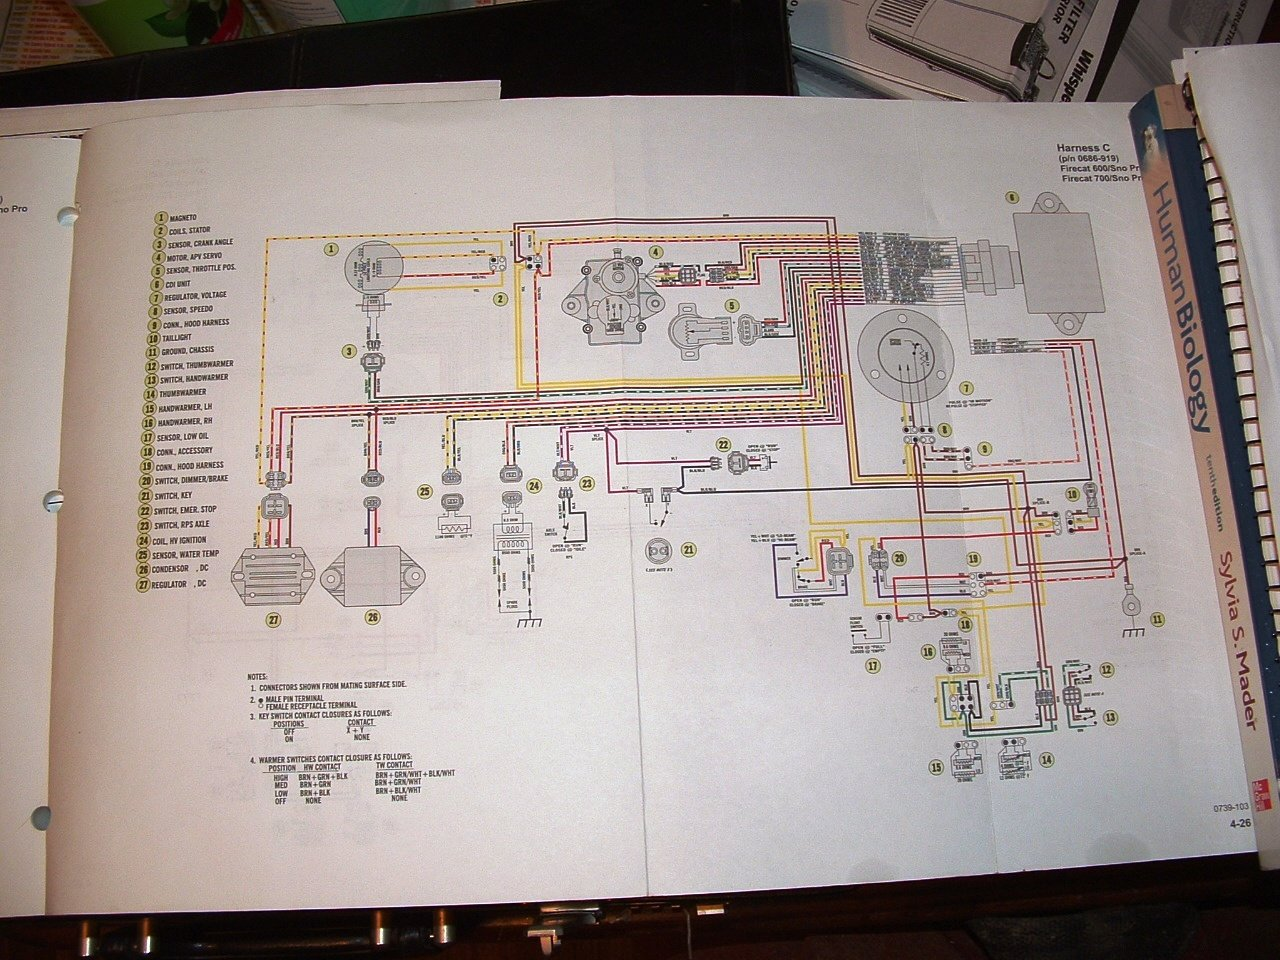 hight resolution of 02 arctic cat 400 wiring diagram wiring diagram rows02 arctic cat 400 wiring diagram wiring diagram